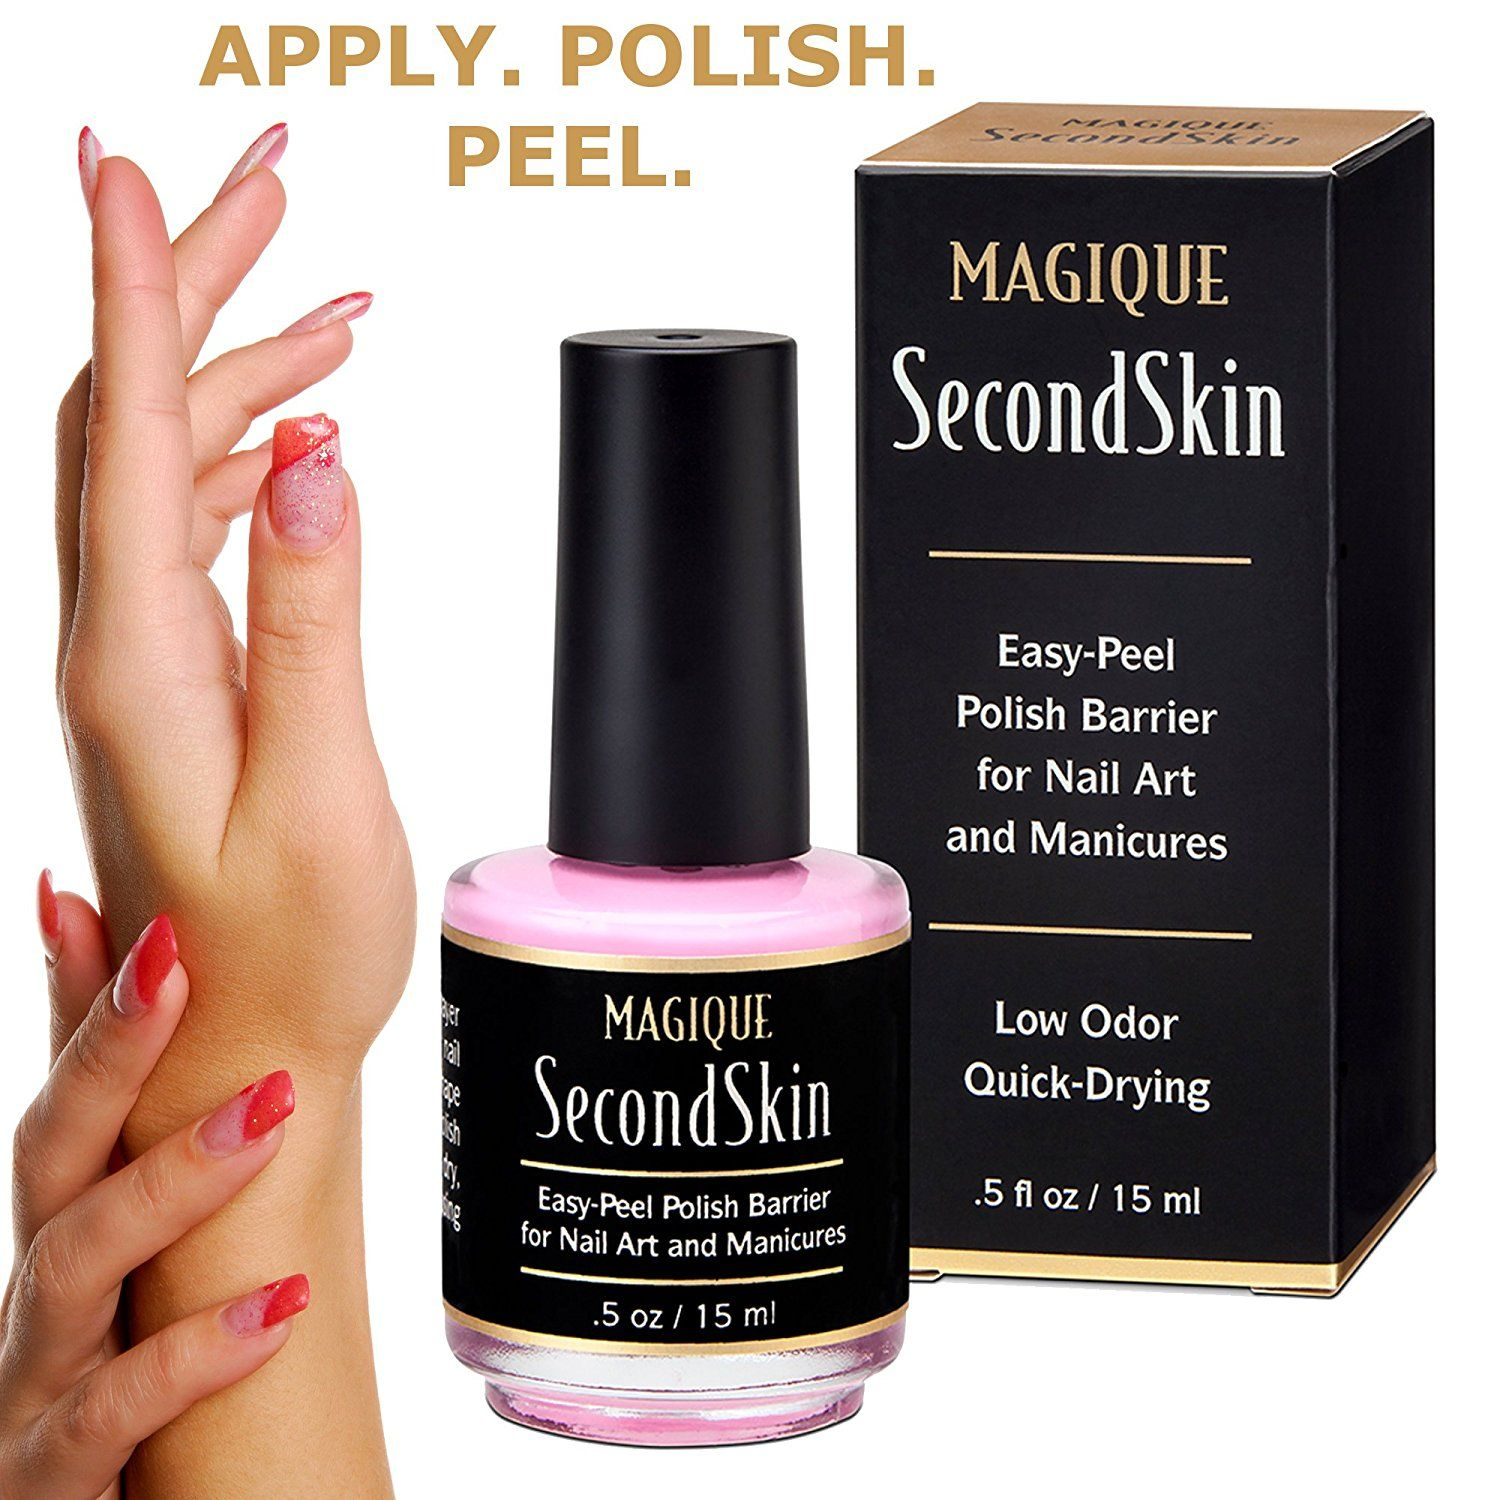 Liquid Latex Barrier For Nail Art Manicures Pedicures L Off Polish Simply Tape Easy Cleanup Messy